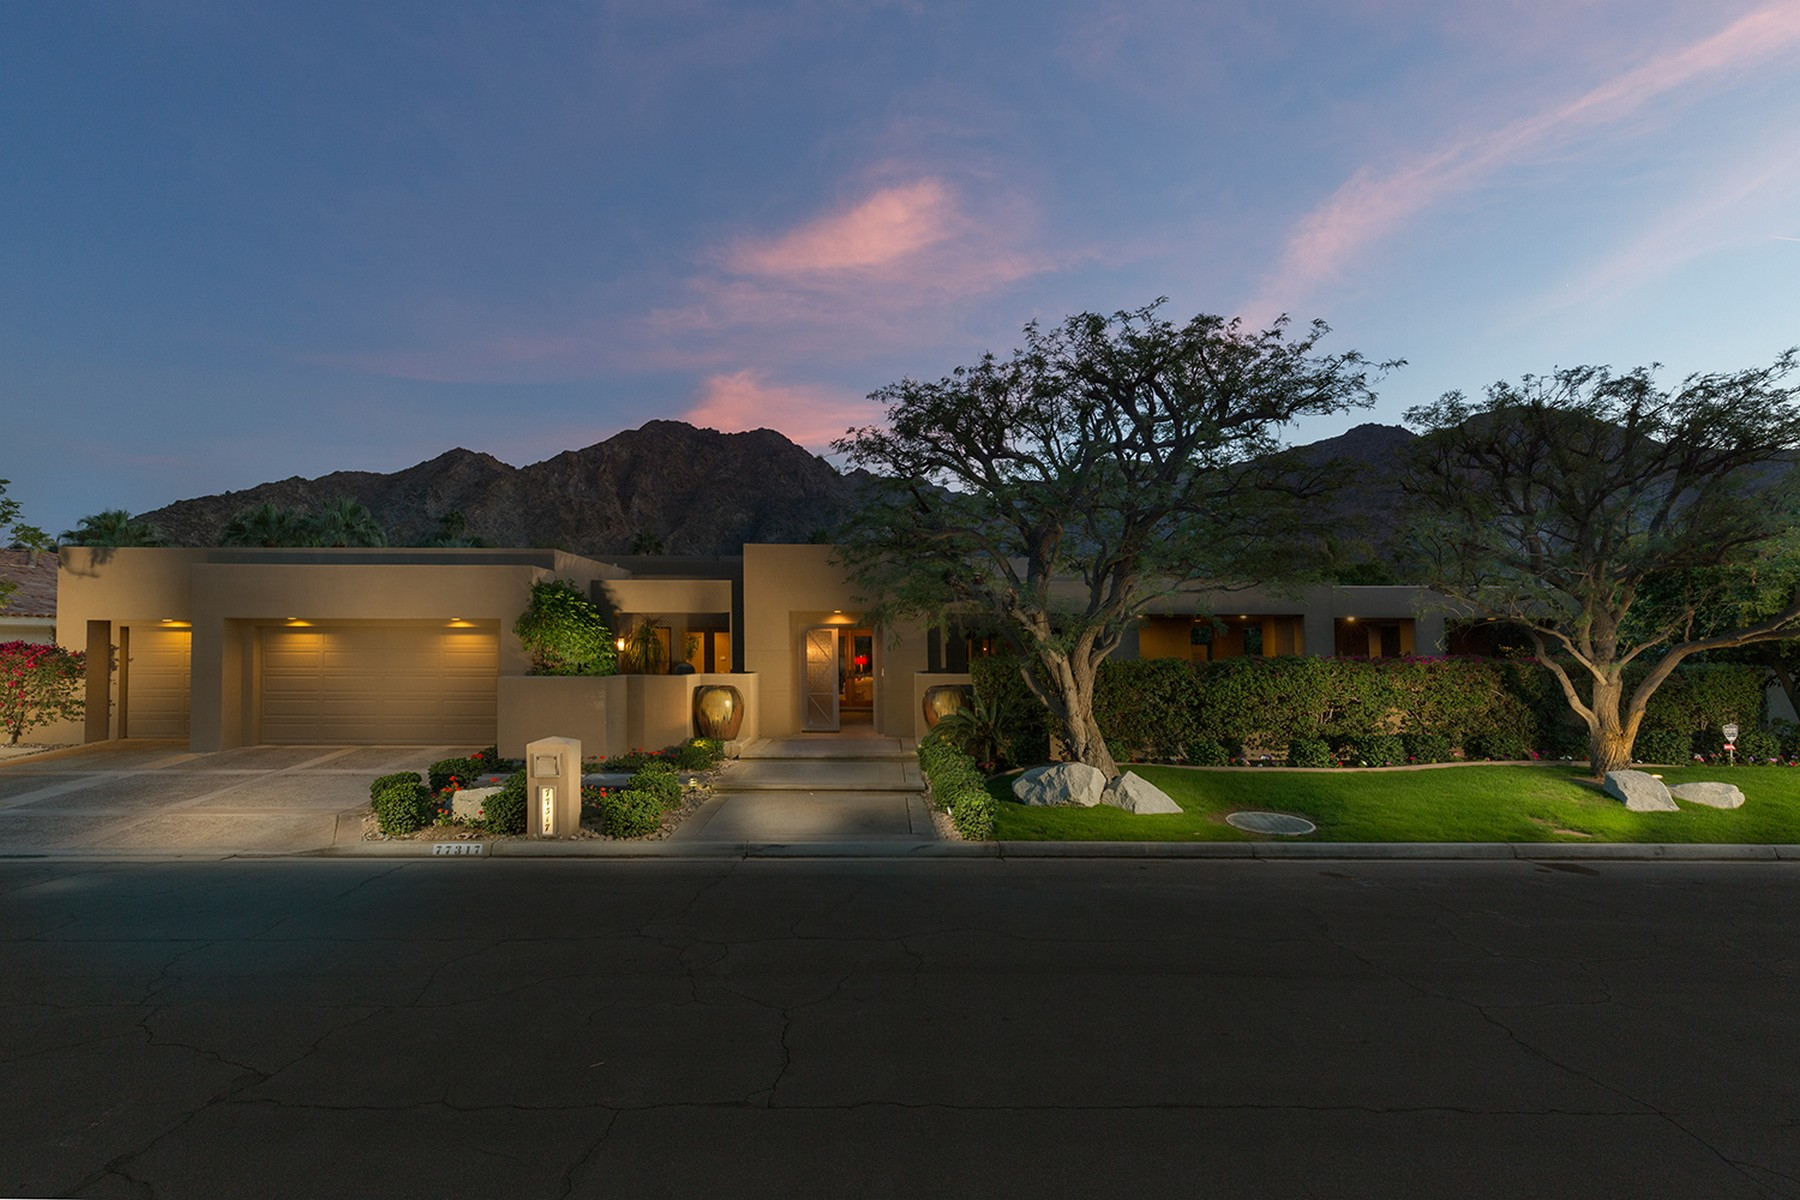 Single Family Home for Sale at 77317 Chocolate Mountain Road Indian Wells, California 92210 United States